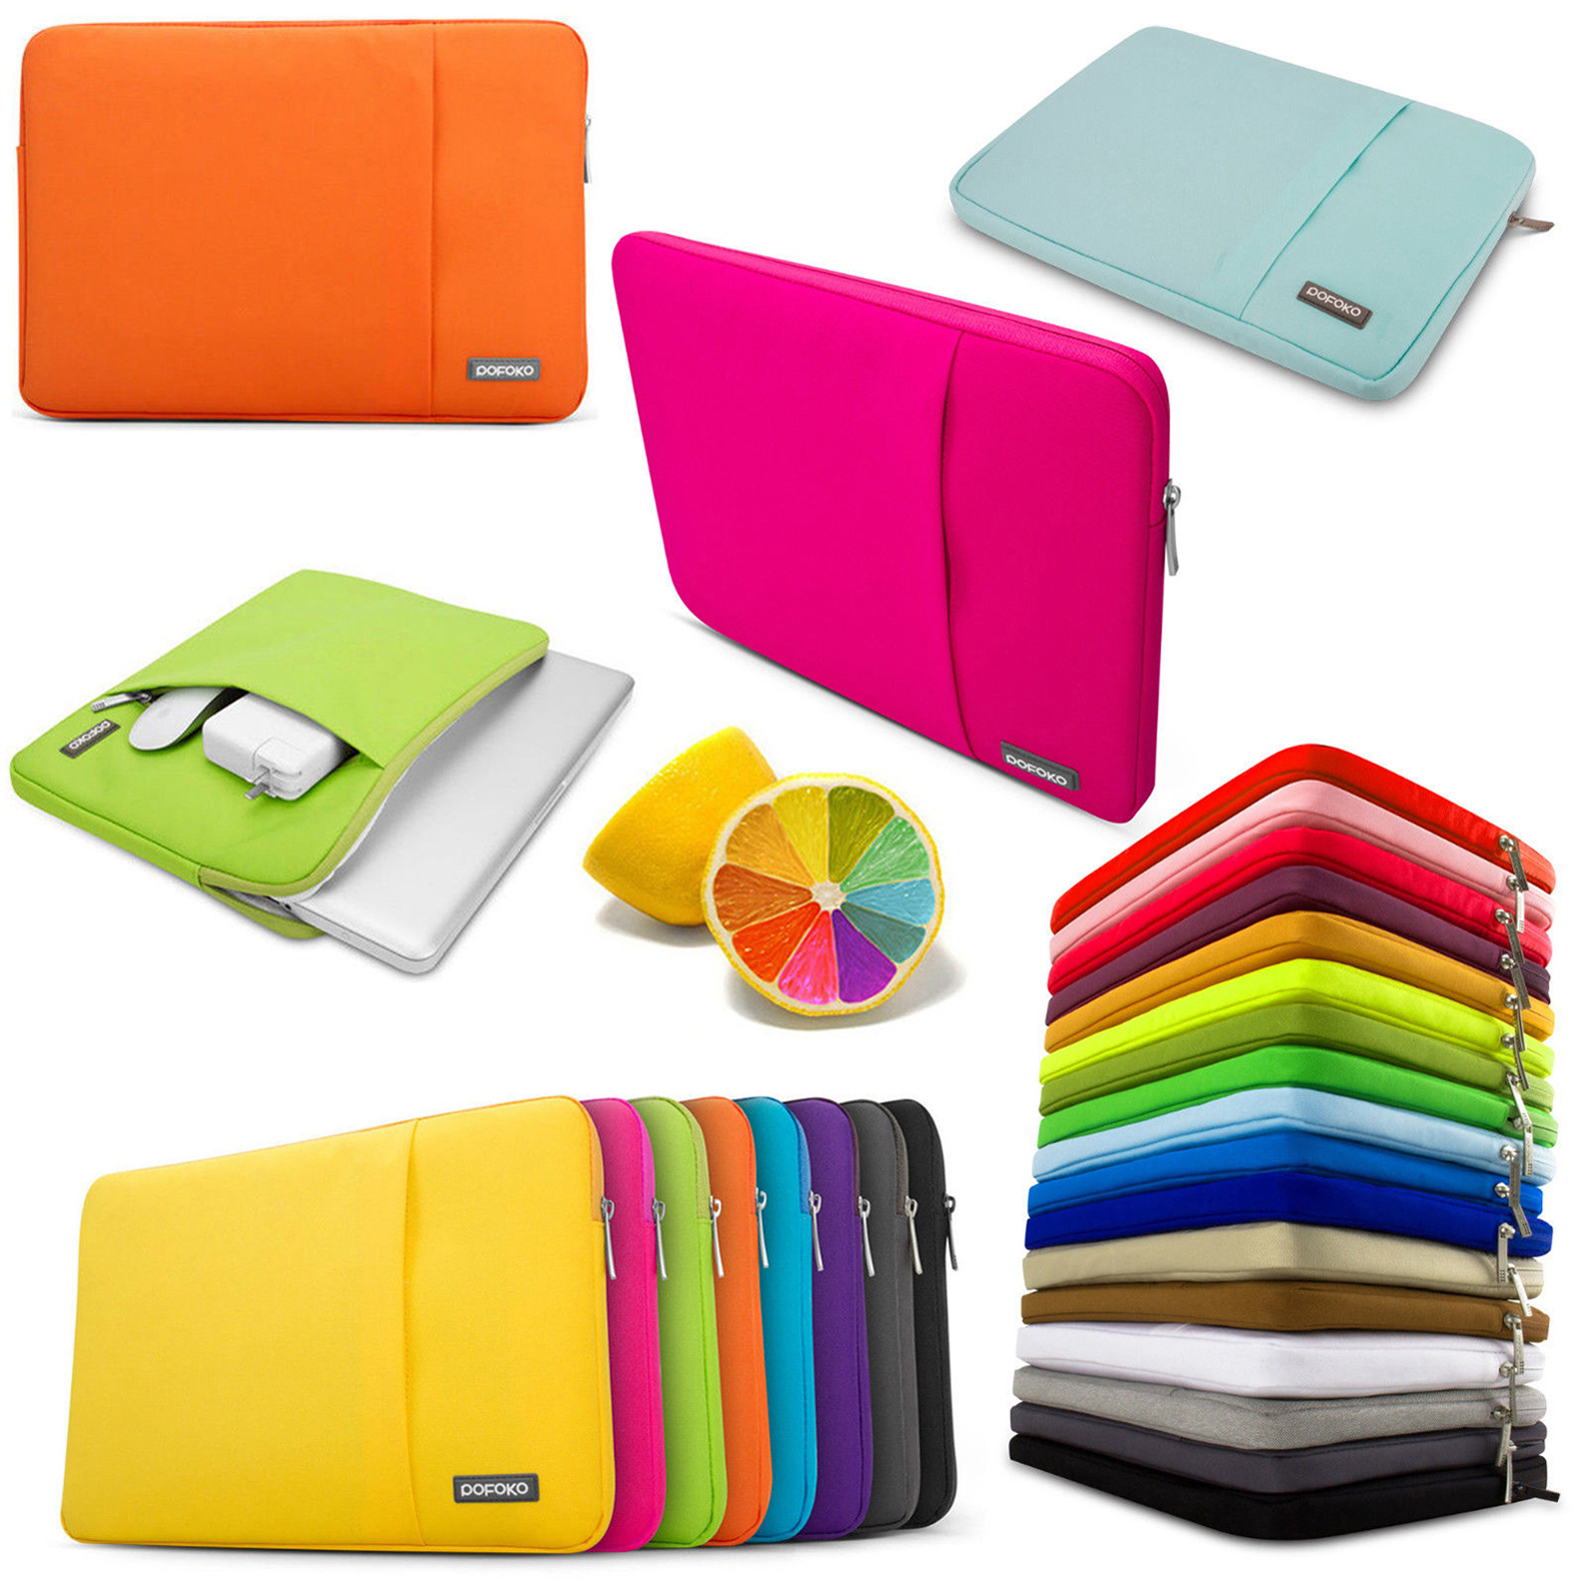 """13 15 15.4"""" inch 15.6"""" 16"""" Notebook Laptop Sleeve Bag Case Cover carry pouch Skins For HP DELL Toshiba ASUS Sony Acer Lenovo IBM"""